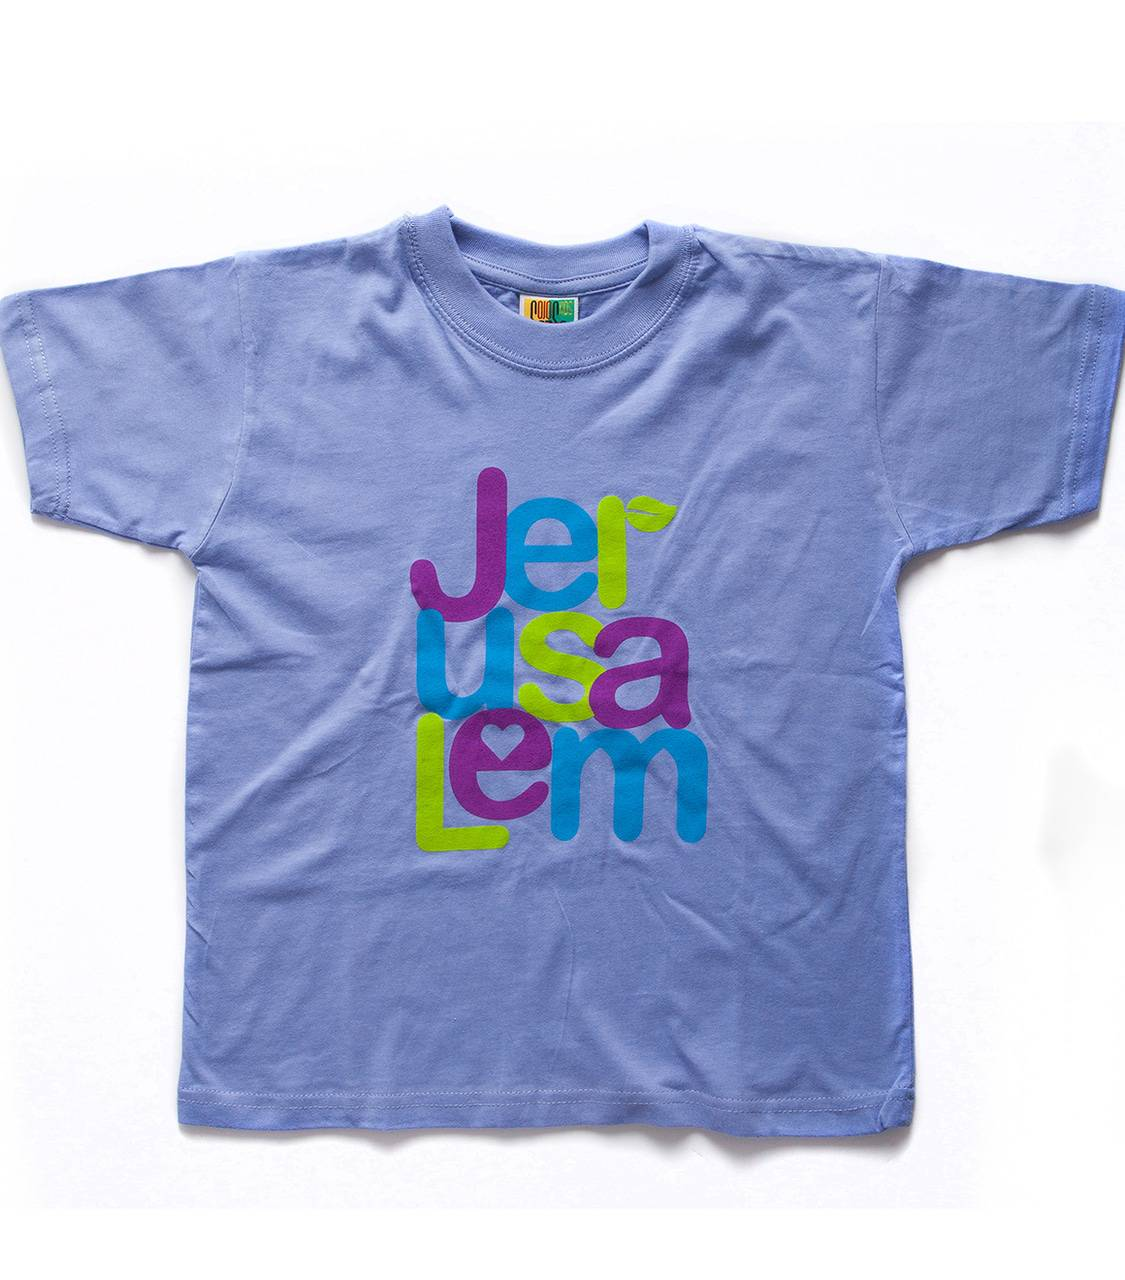 Children's T-Shirt - Jerusalem City LIght Blue